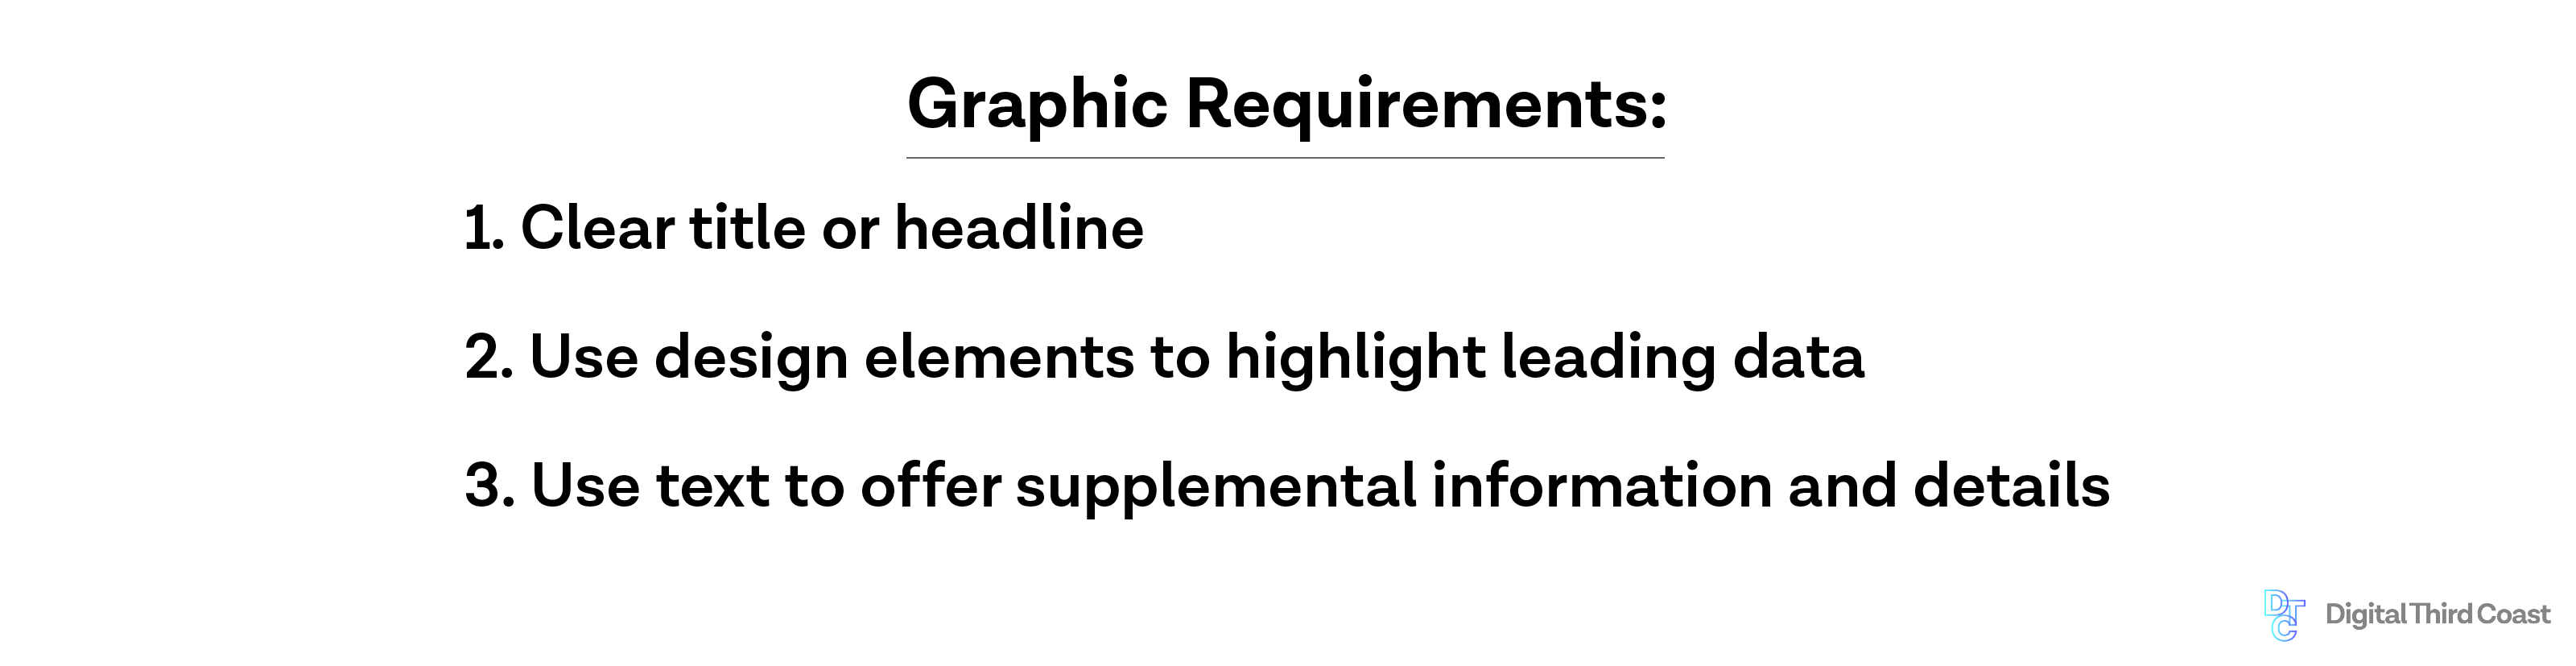 Graphic requirements for successful infographic: Clear title or headline, use of design elements to highlight leading data, and use of text to offer supplemental information.